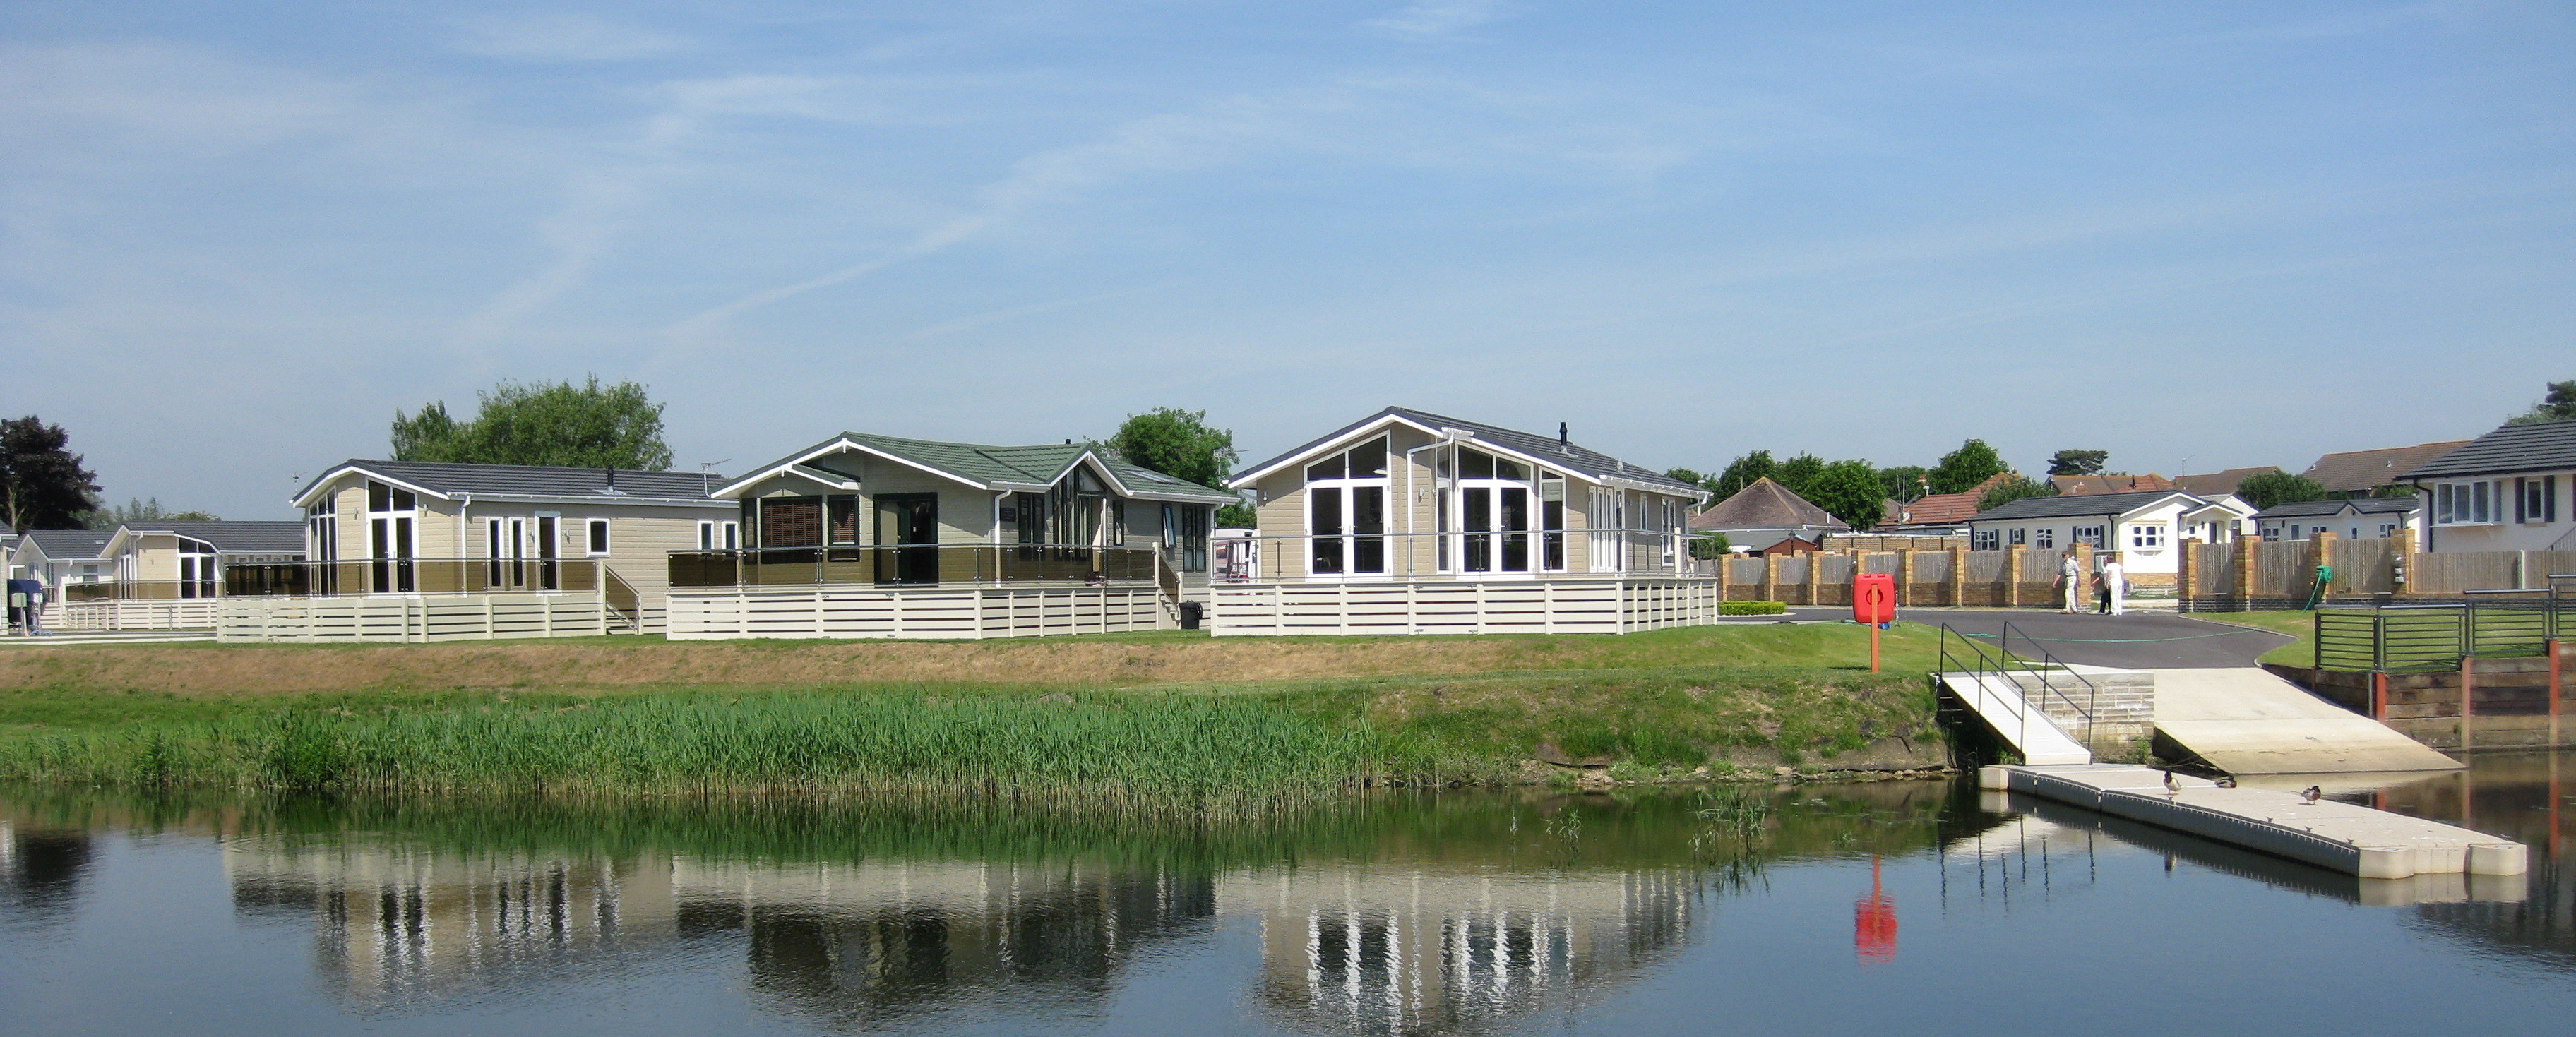 Beaulieu Gardens Is A Beautiful Riverside Development Of 20 Privately Owned Luxury Holiday Lodges The Park Offers Boat Access To Lovely River Stour And